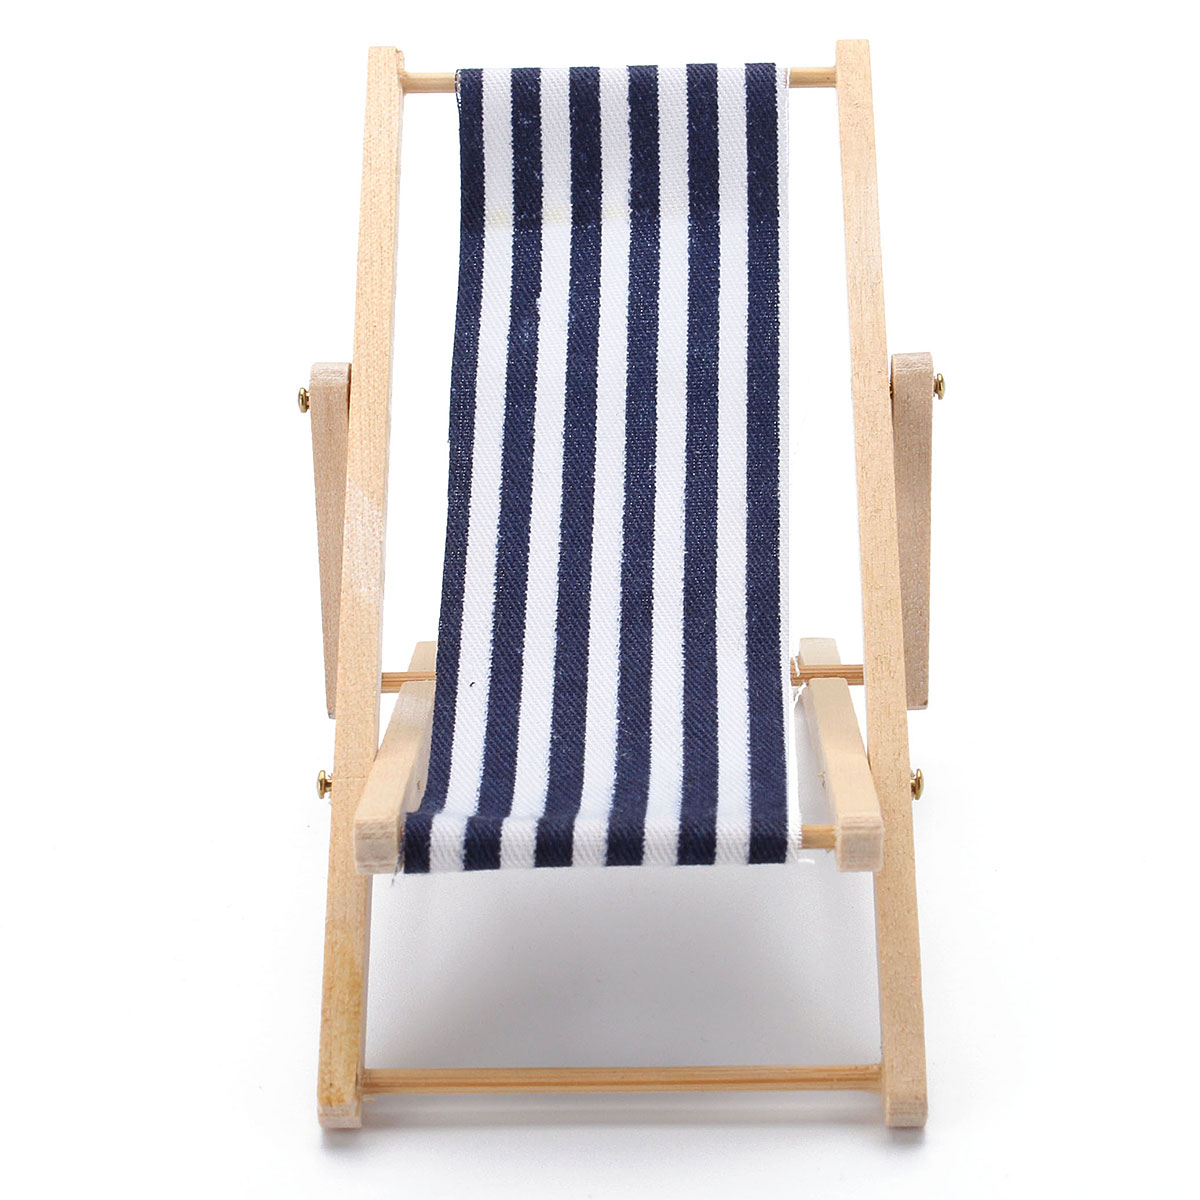 mini beach chair picture frames swing seat under pergola 1 12 blue white chaise longue foldable